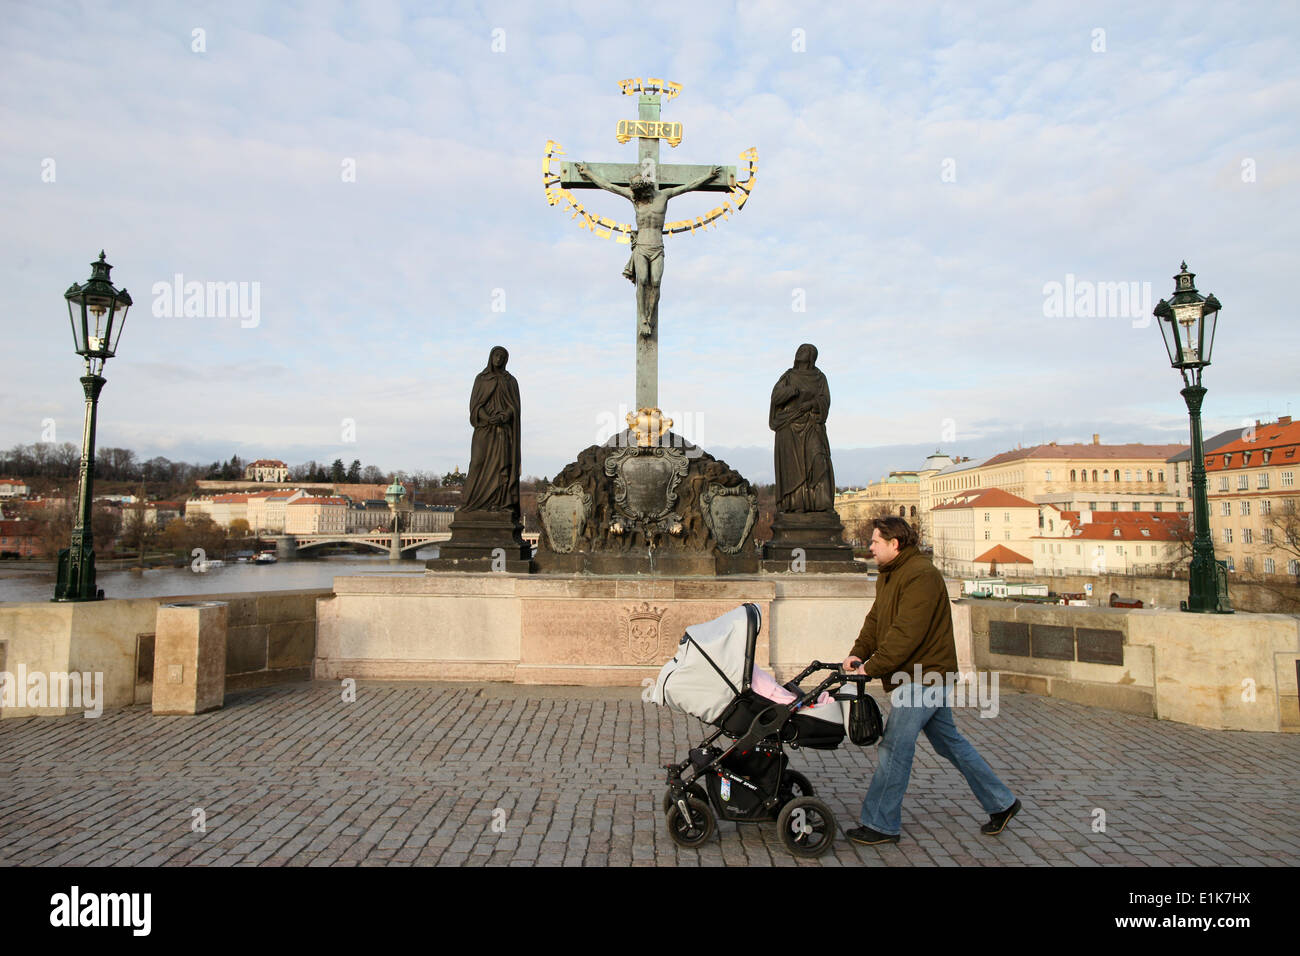 Statue of Jesus on the cross with Hebrew lettering on Charles bridge. - Stock Image